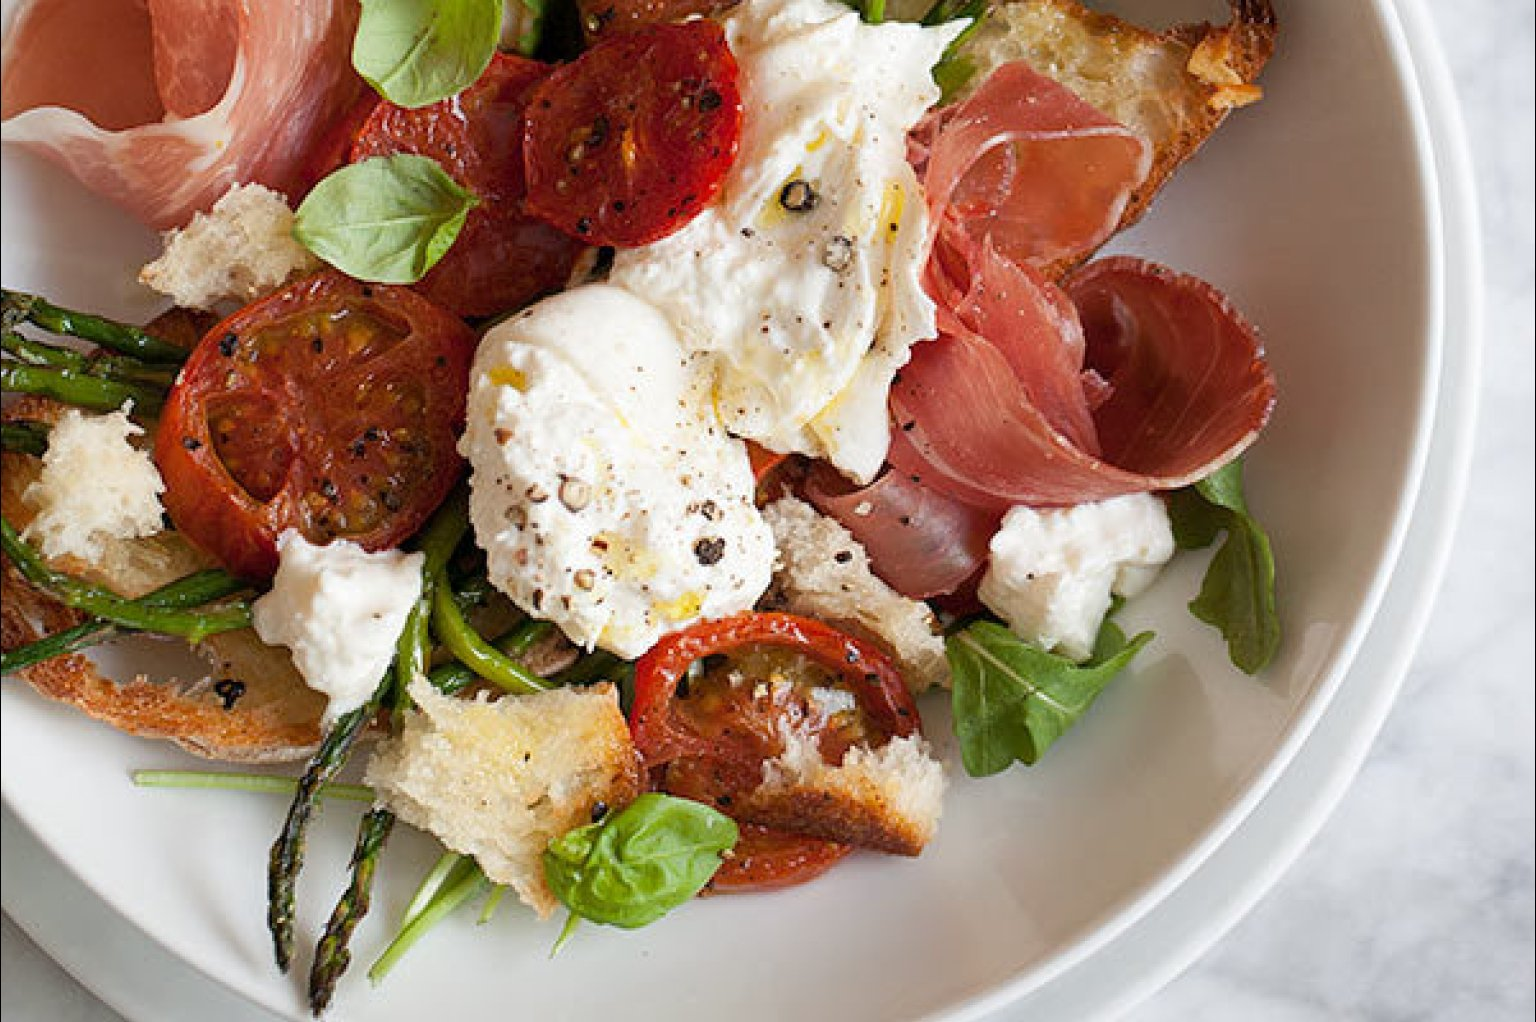 Burrata Images | Crazy Gallery